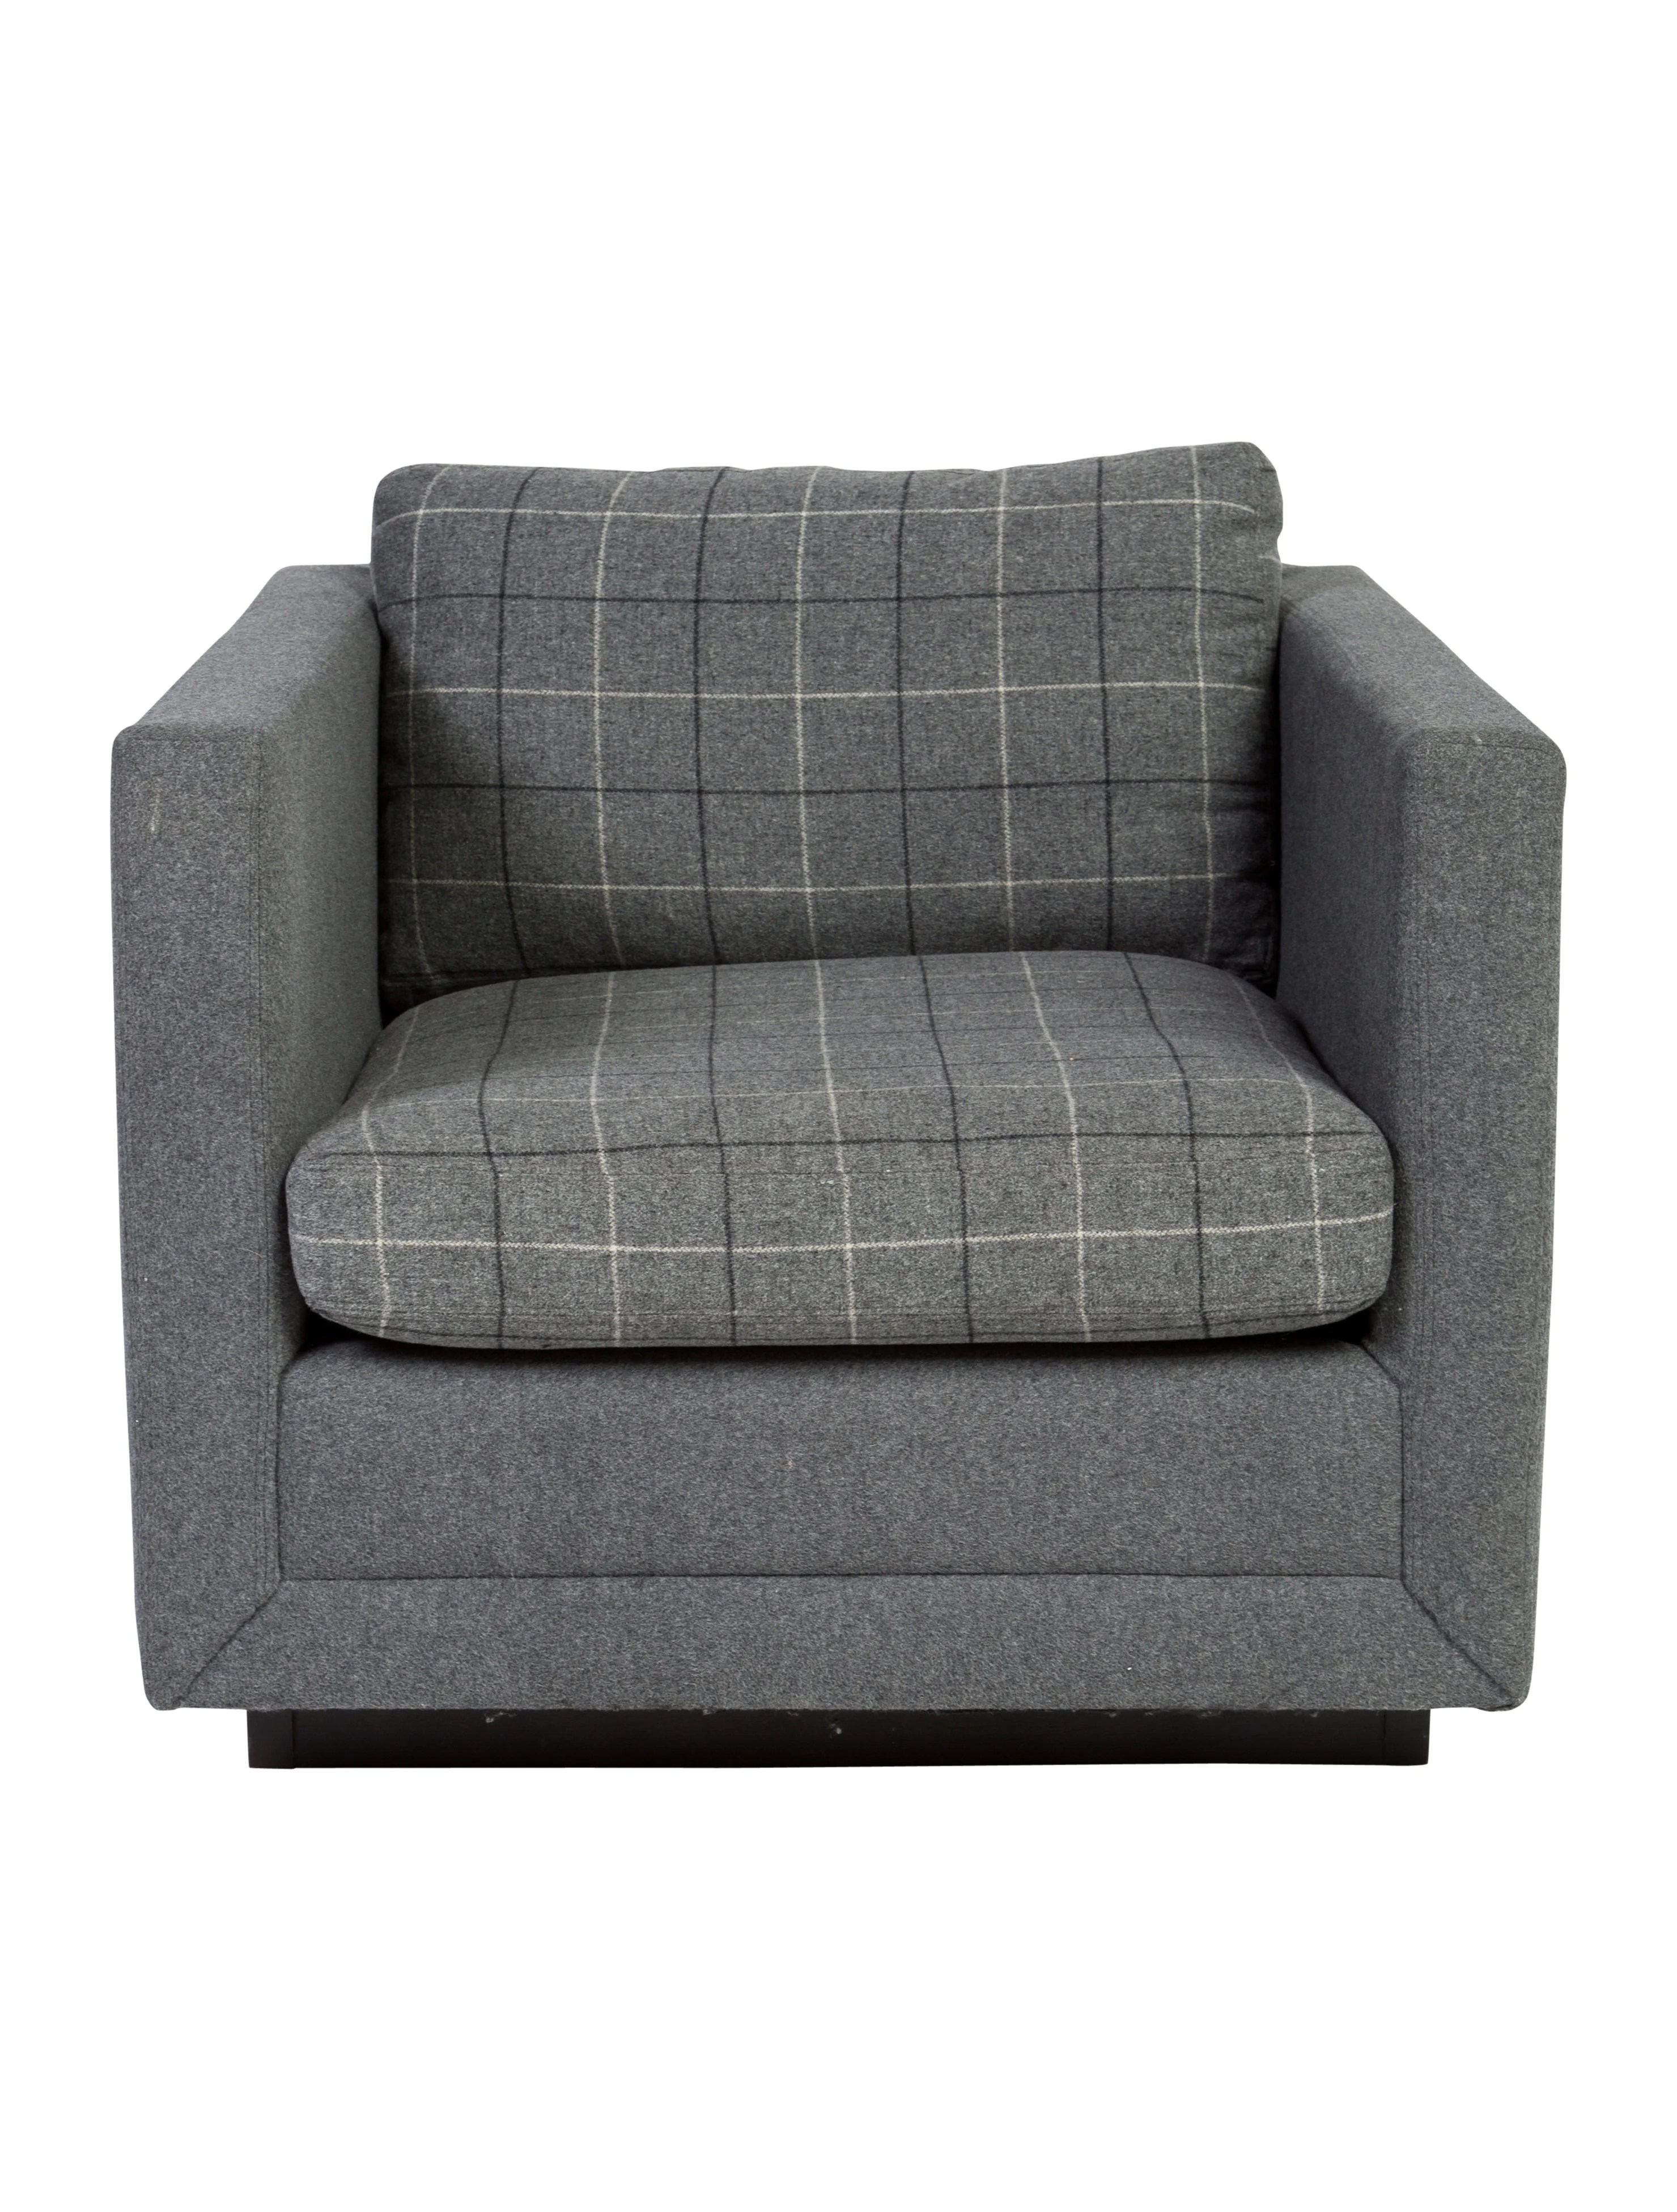 tartan dining chair covers for sale revolving india jonathan adler blakeley plaid club furniture